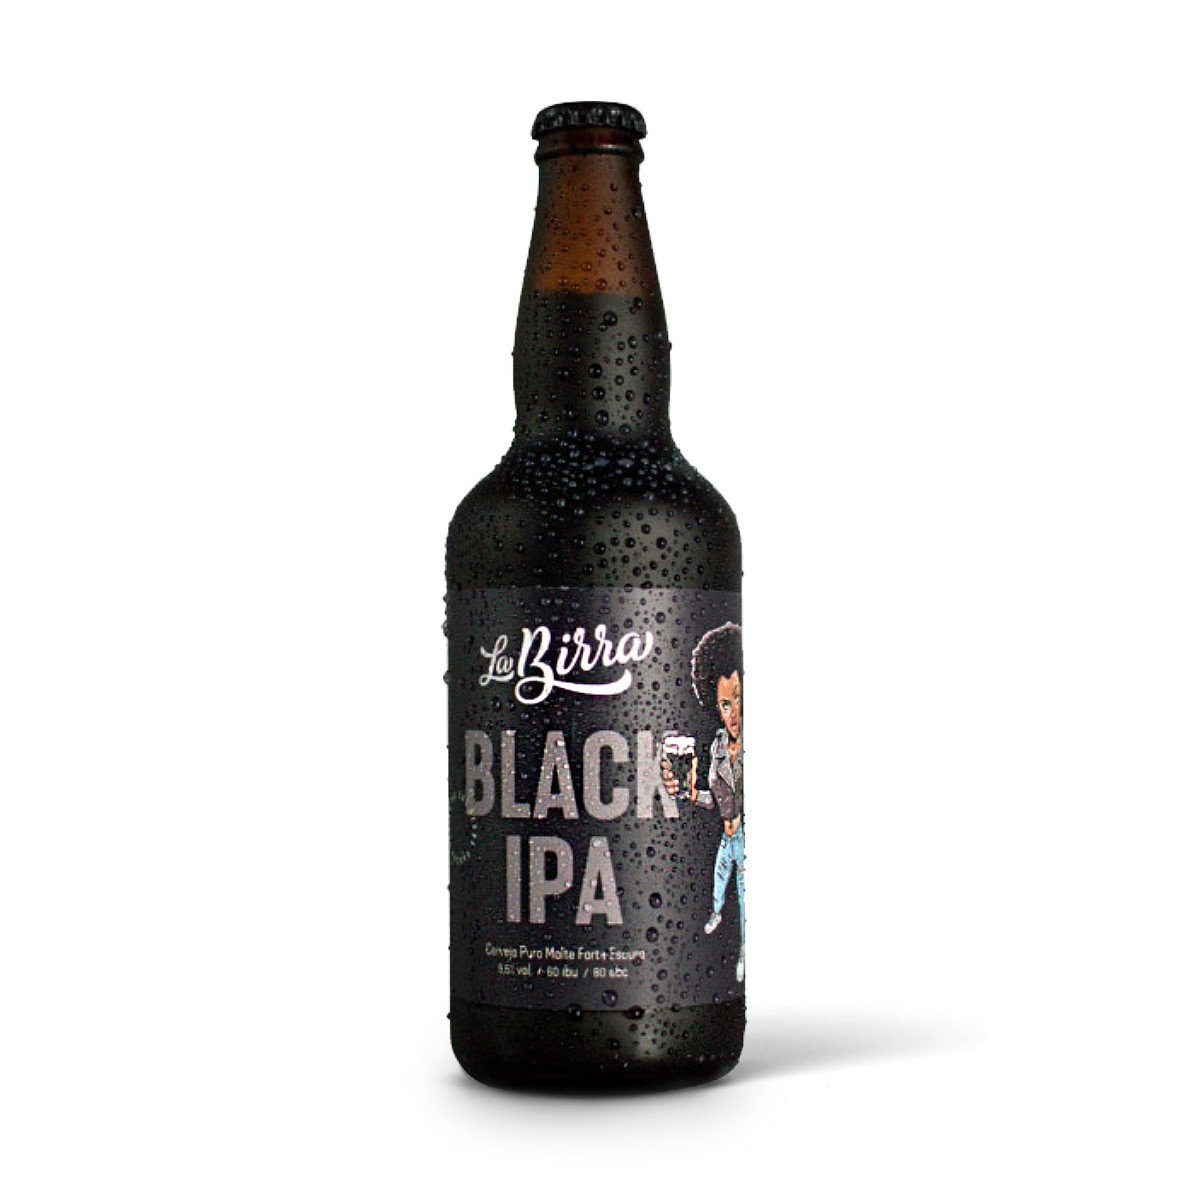 La Birra Black IPA 500ml